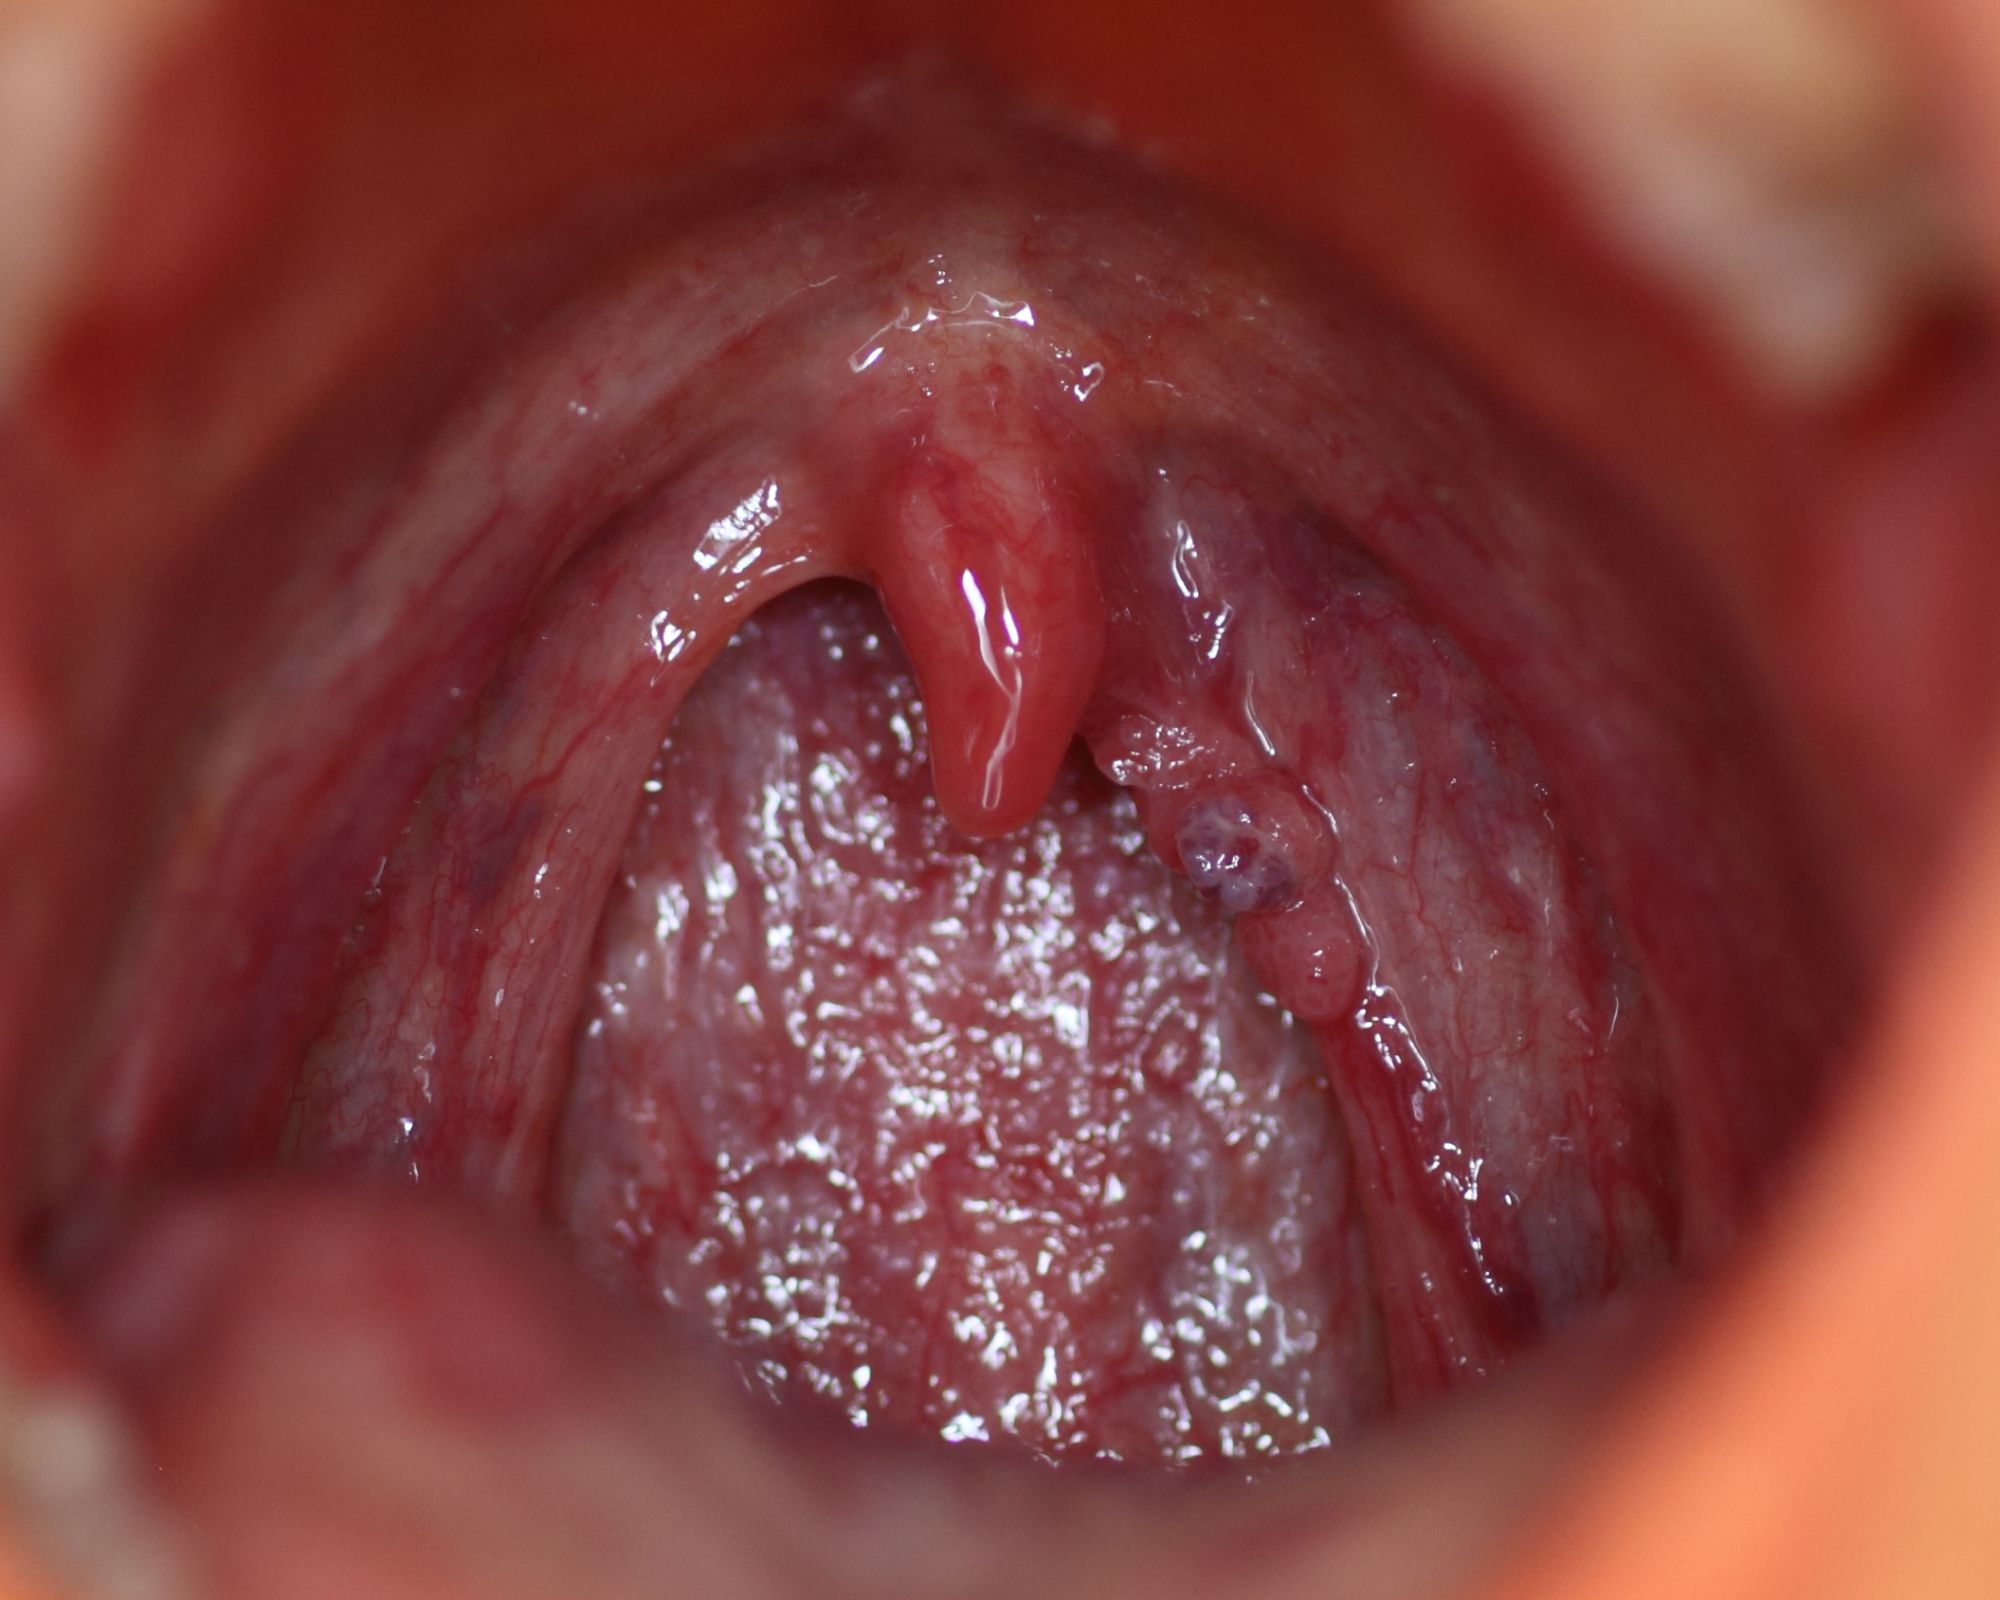 hpv warts on throat